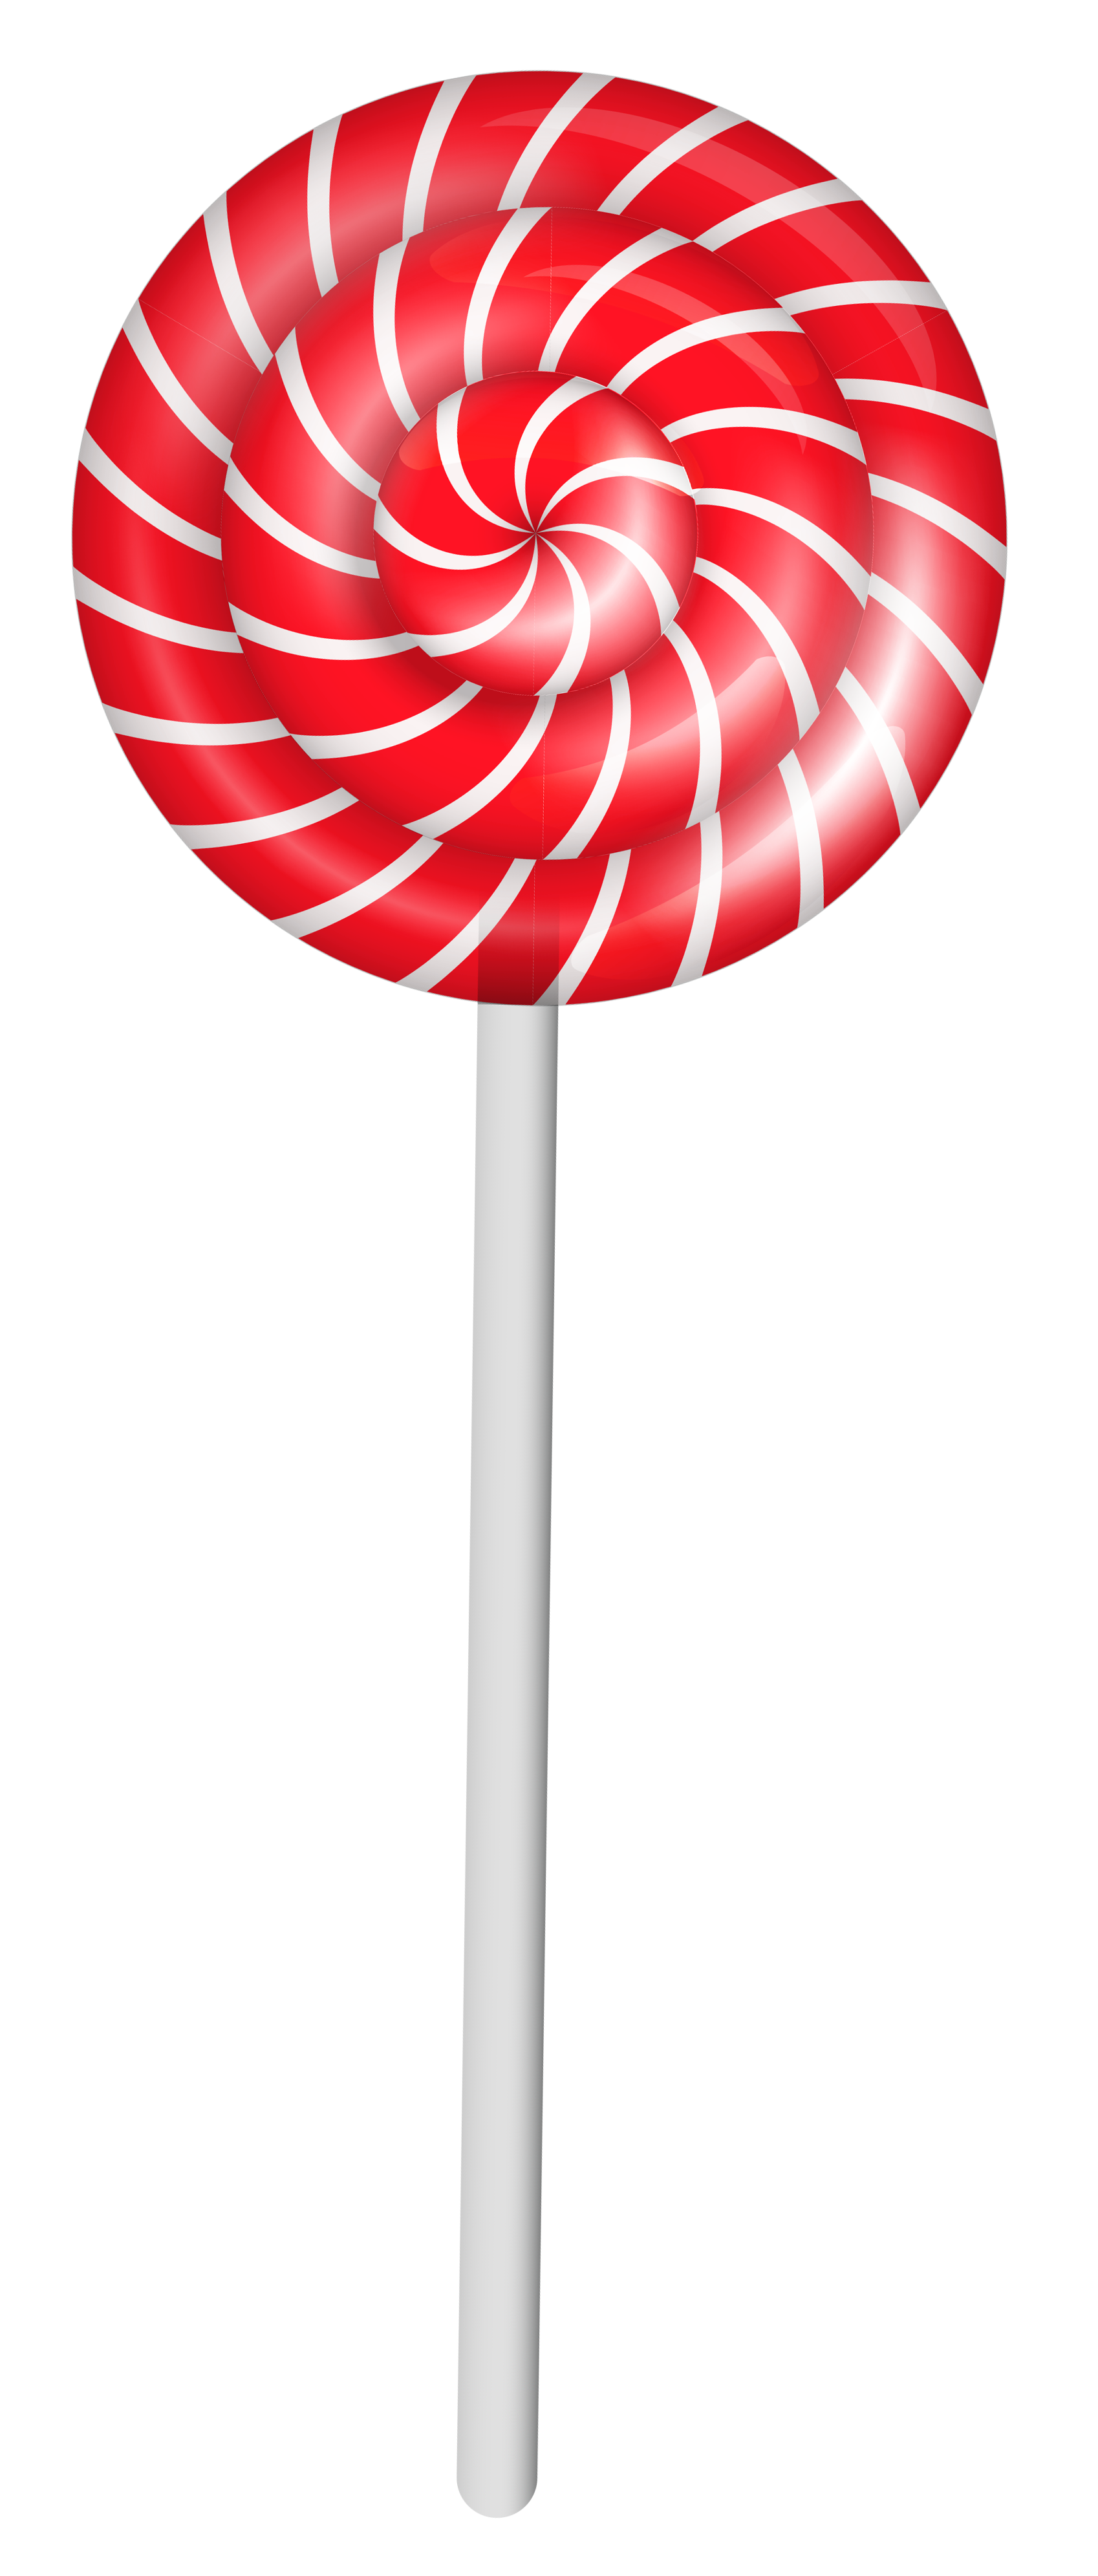 Transparent pin lollipop. By next on food